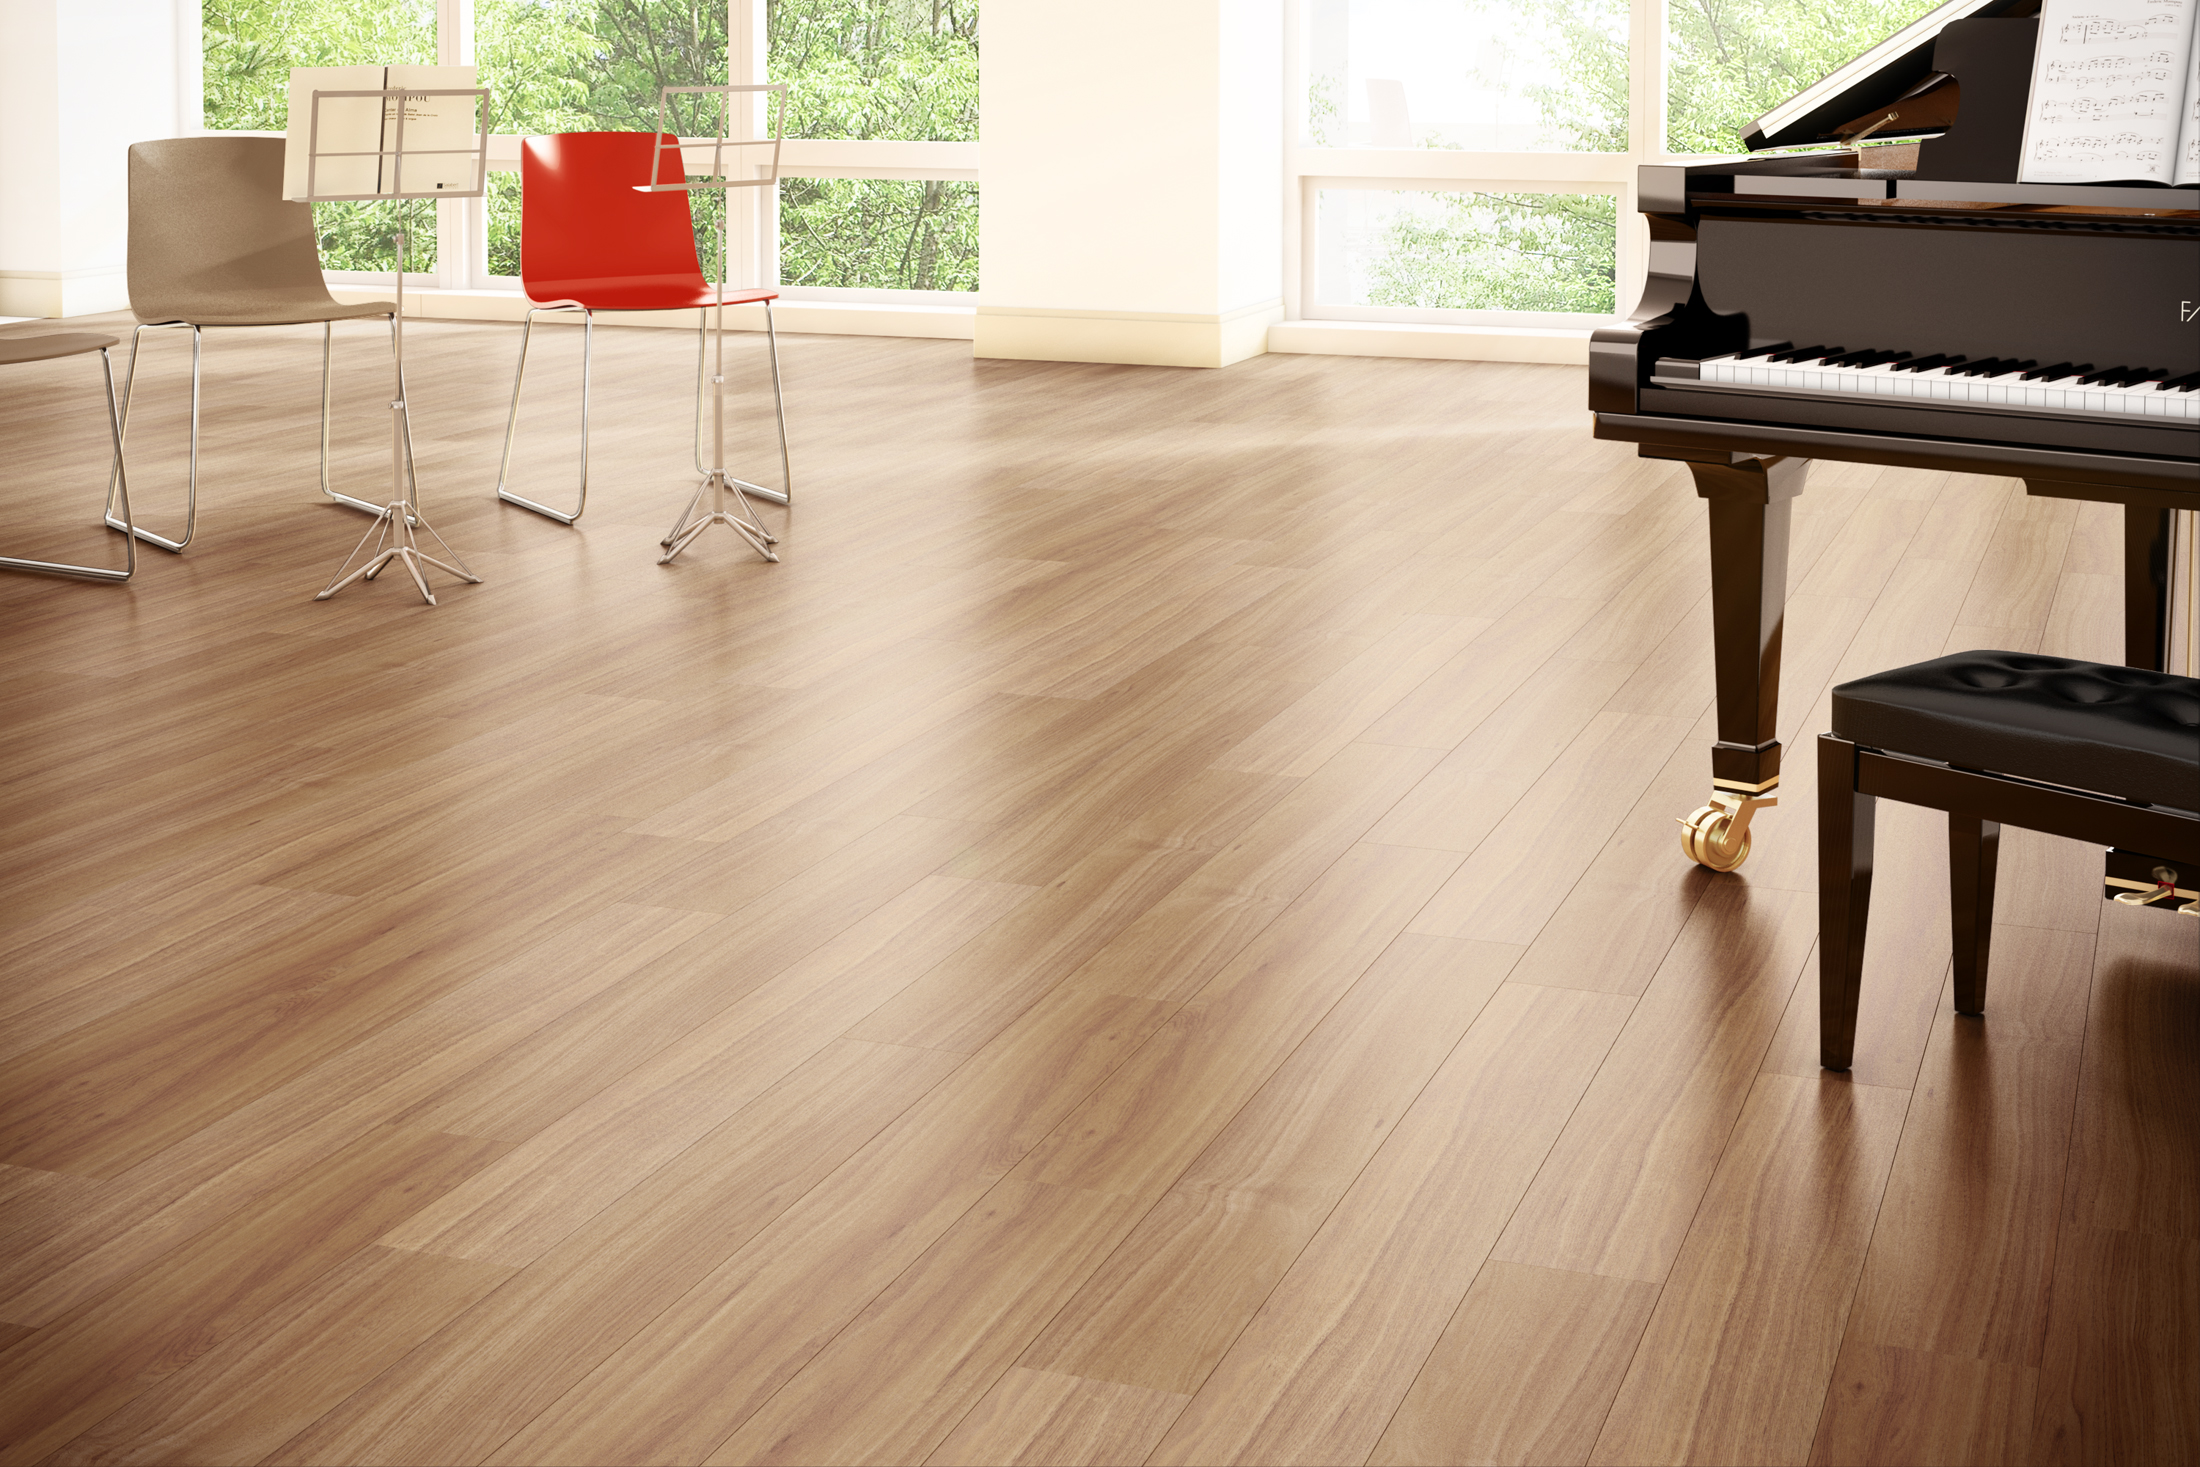 Luxury vinyl flooring vinyl flooring in abu dhabi for Vinyl tile over linoleum